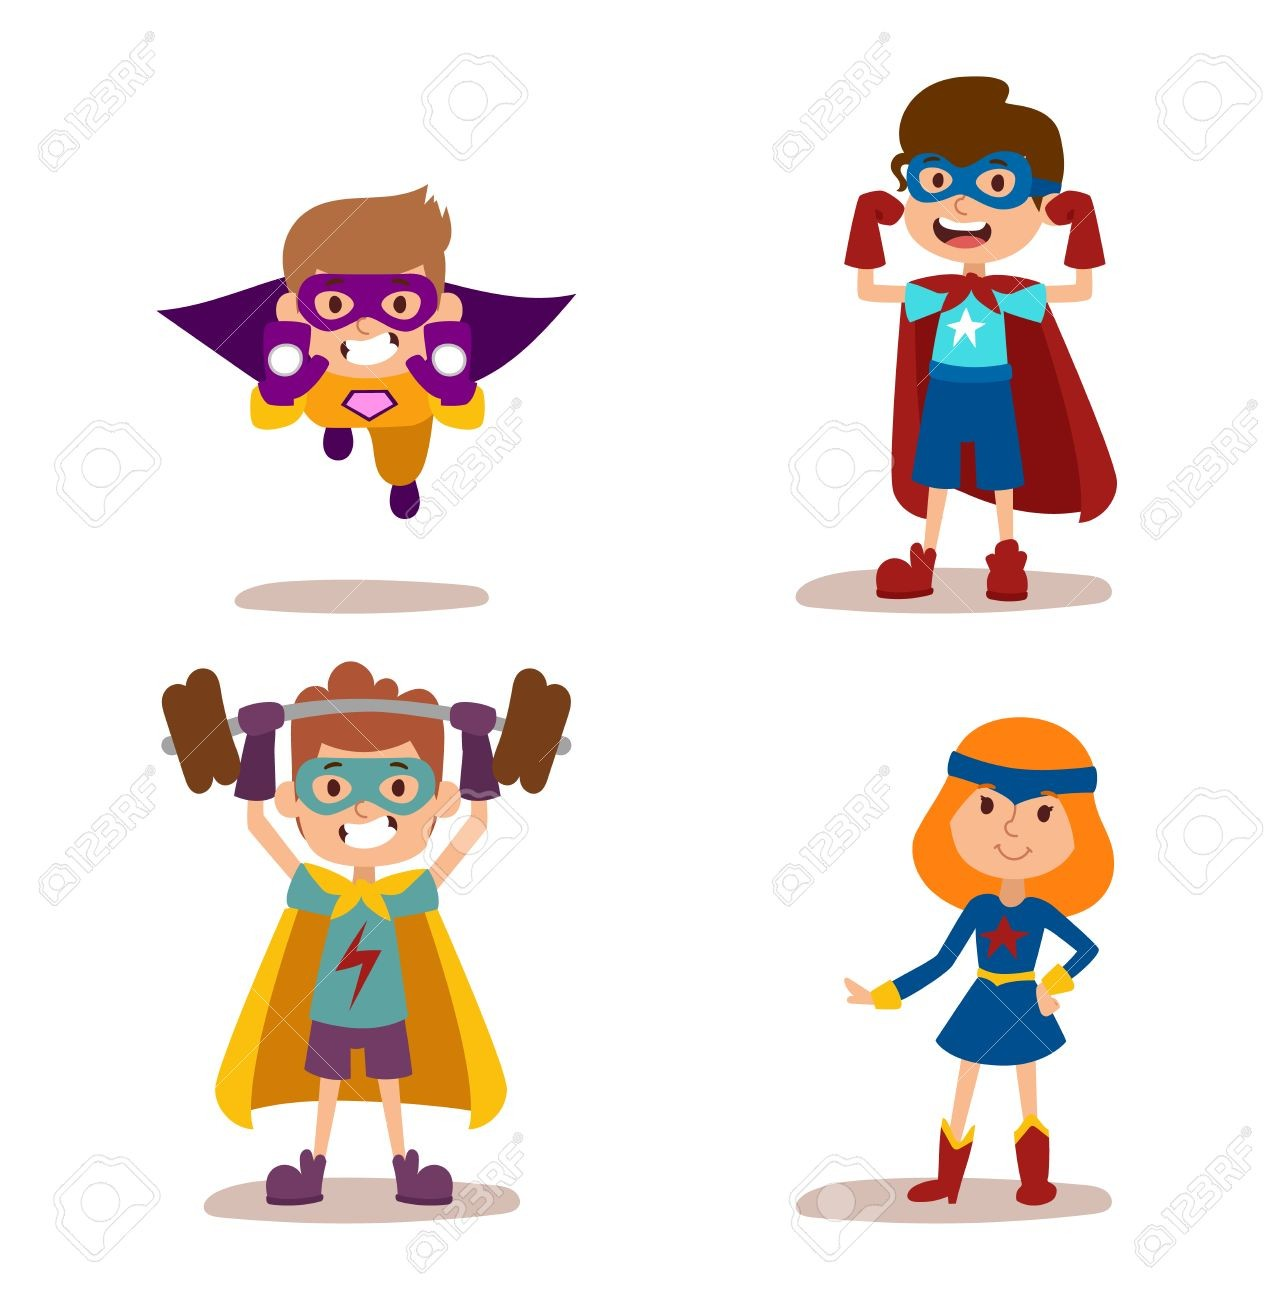 1273x1300 Boy Superhero Clip Art Little Boys Superheroes Superboys Digital